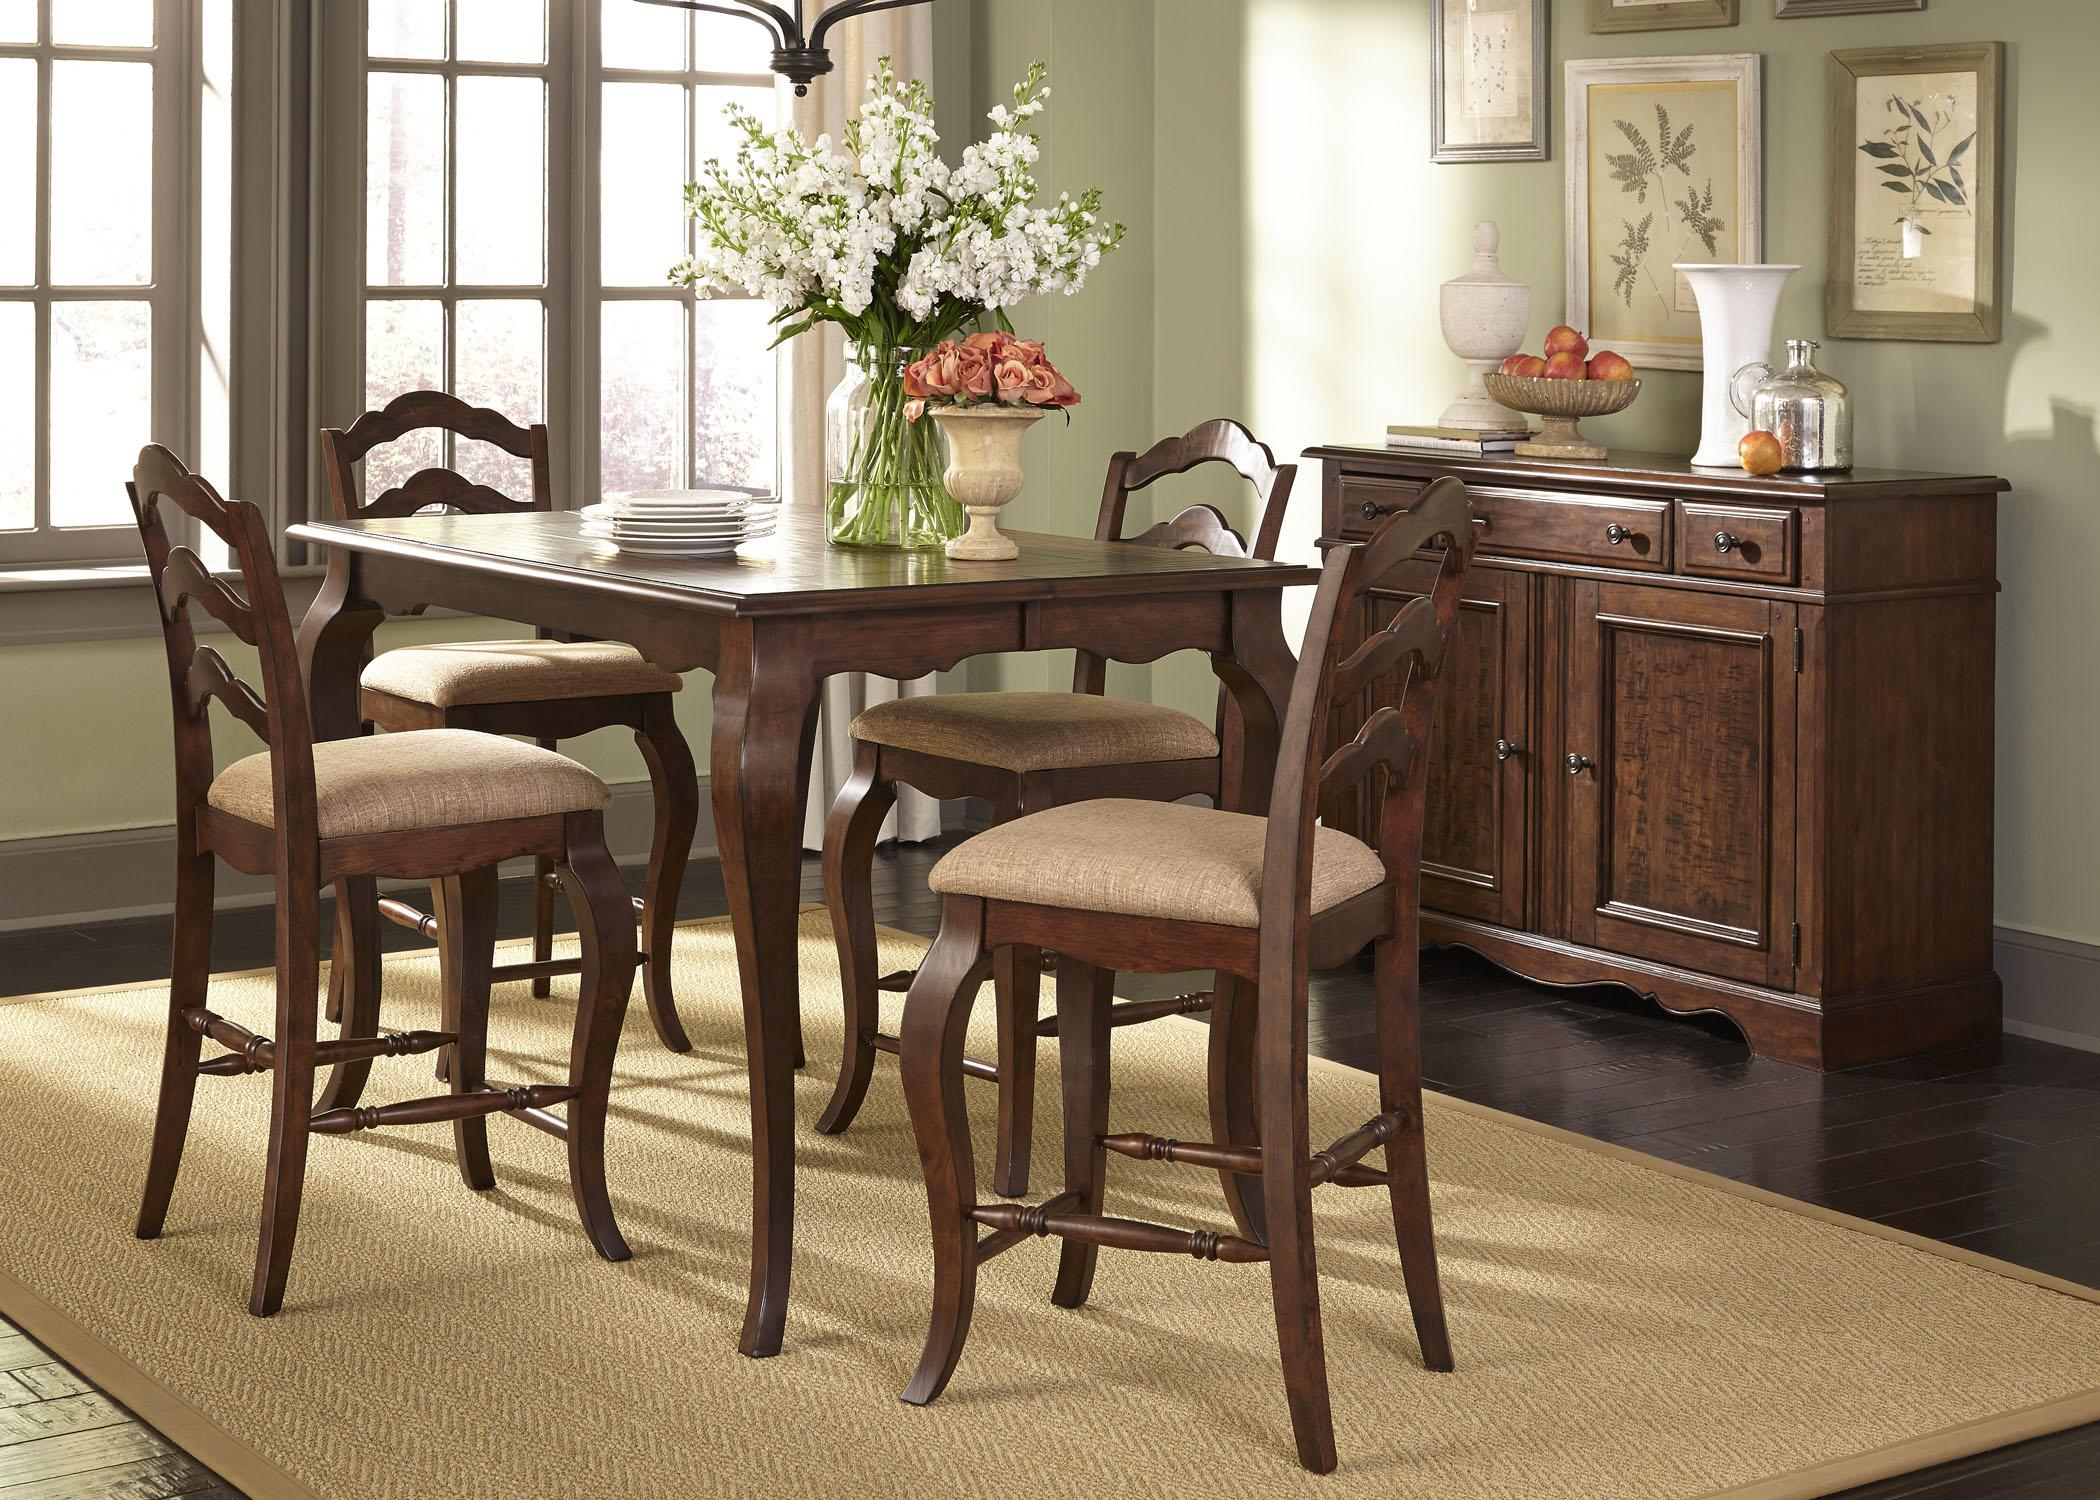 Liberty furniture woodland creek casual dining room group for Casual dining room